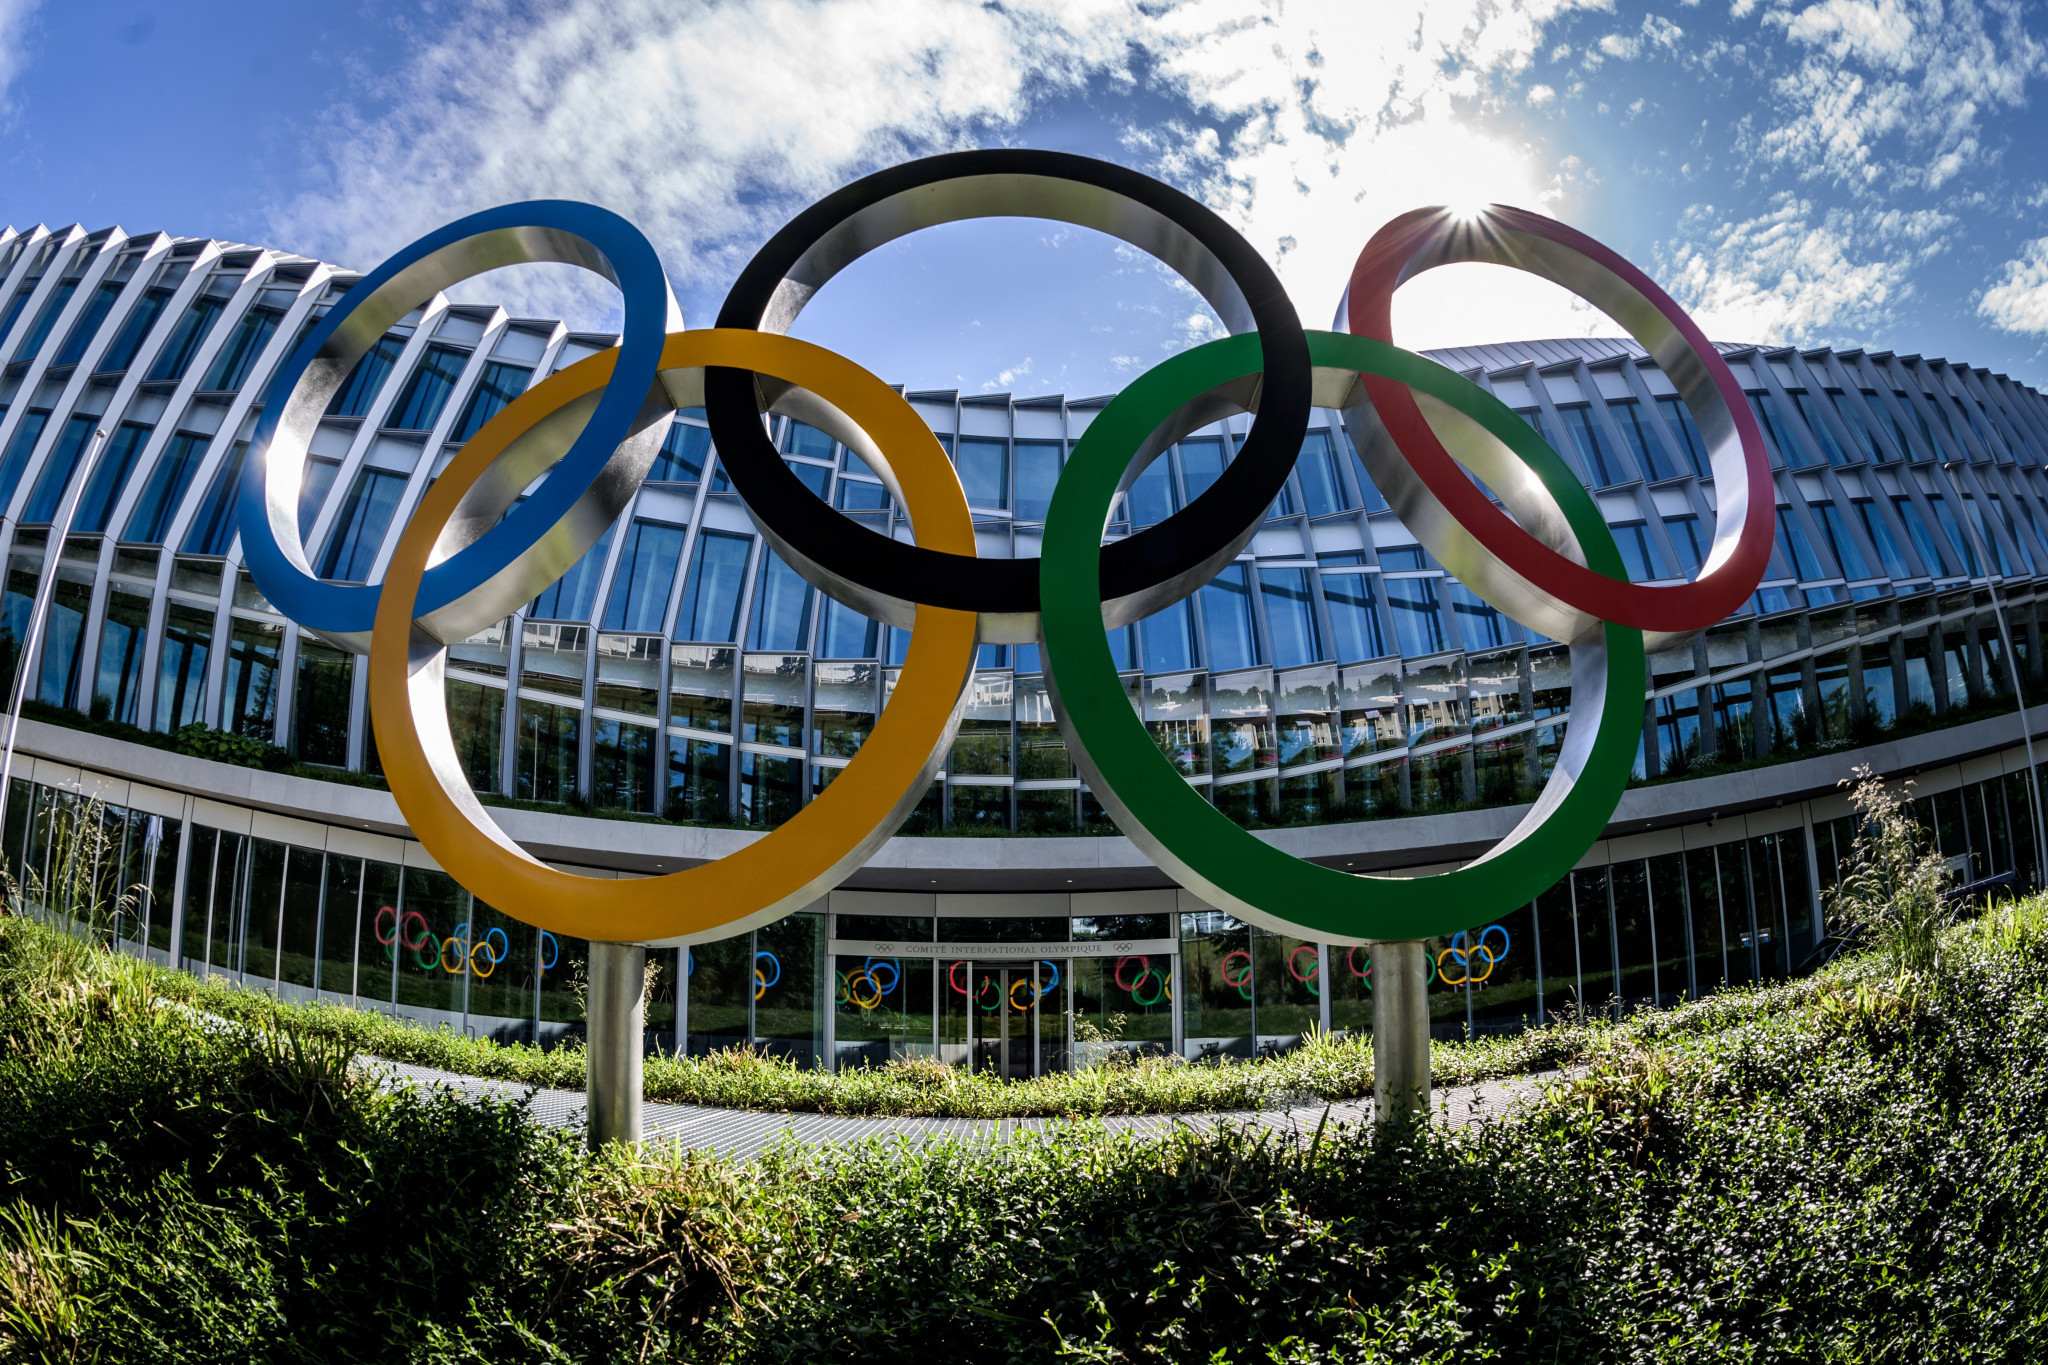 Olympic Agenda 2020+5 consists of 15 recommendations ©Getty Images